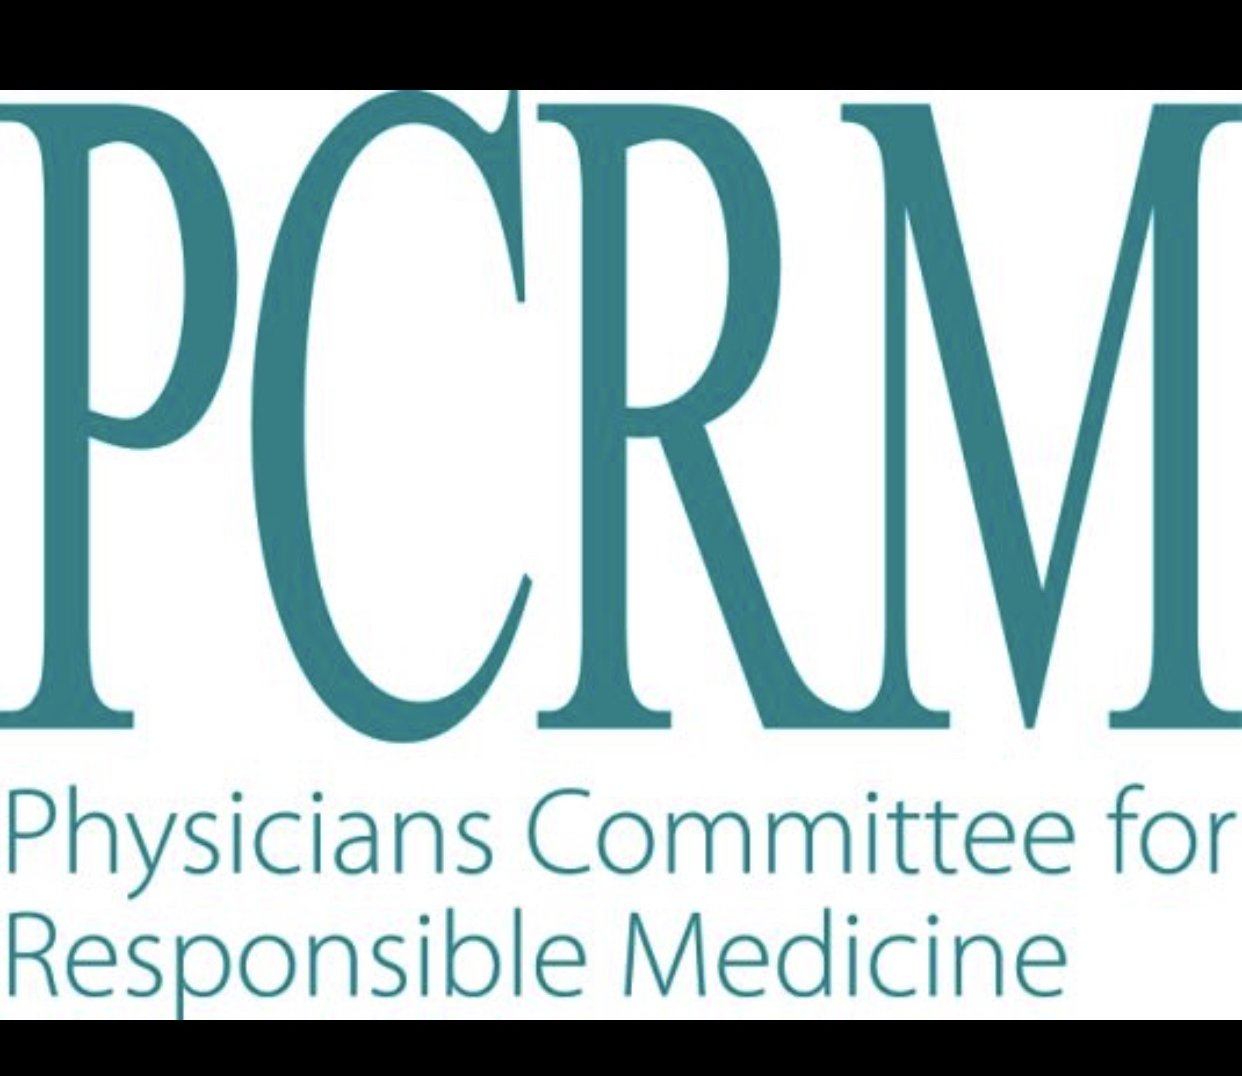 Physicians Committe for Responsible Medicine